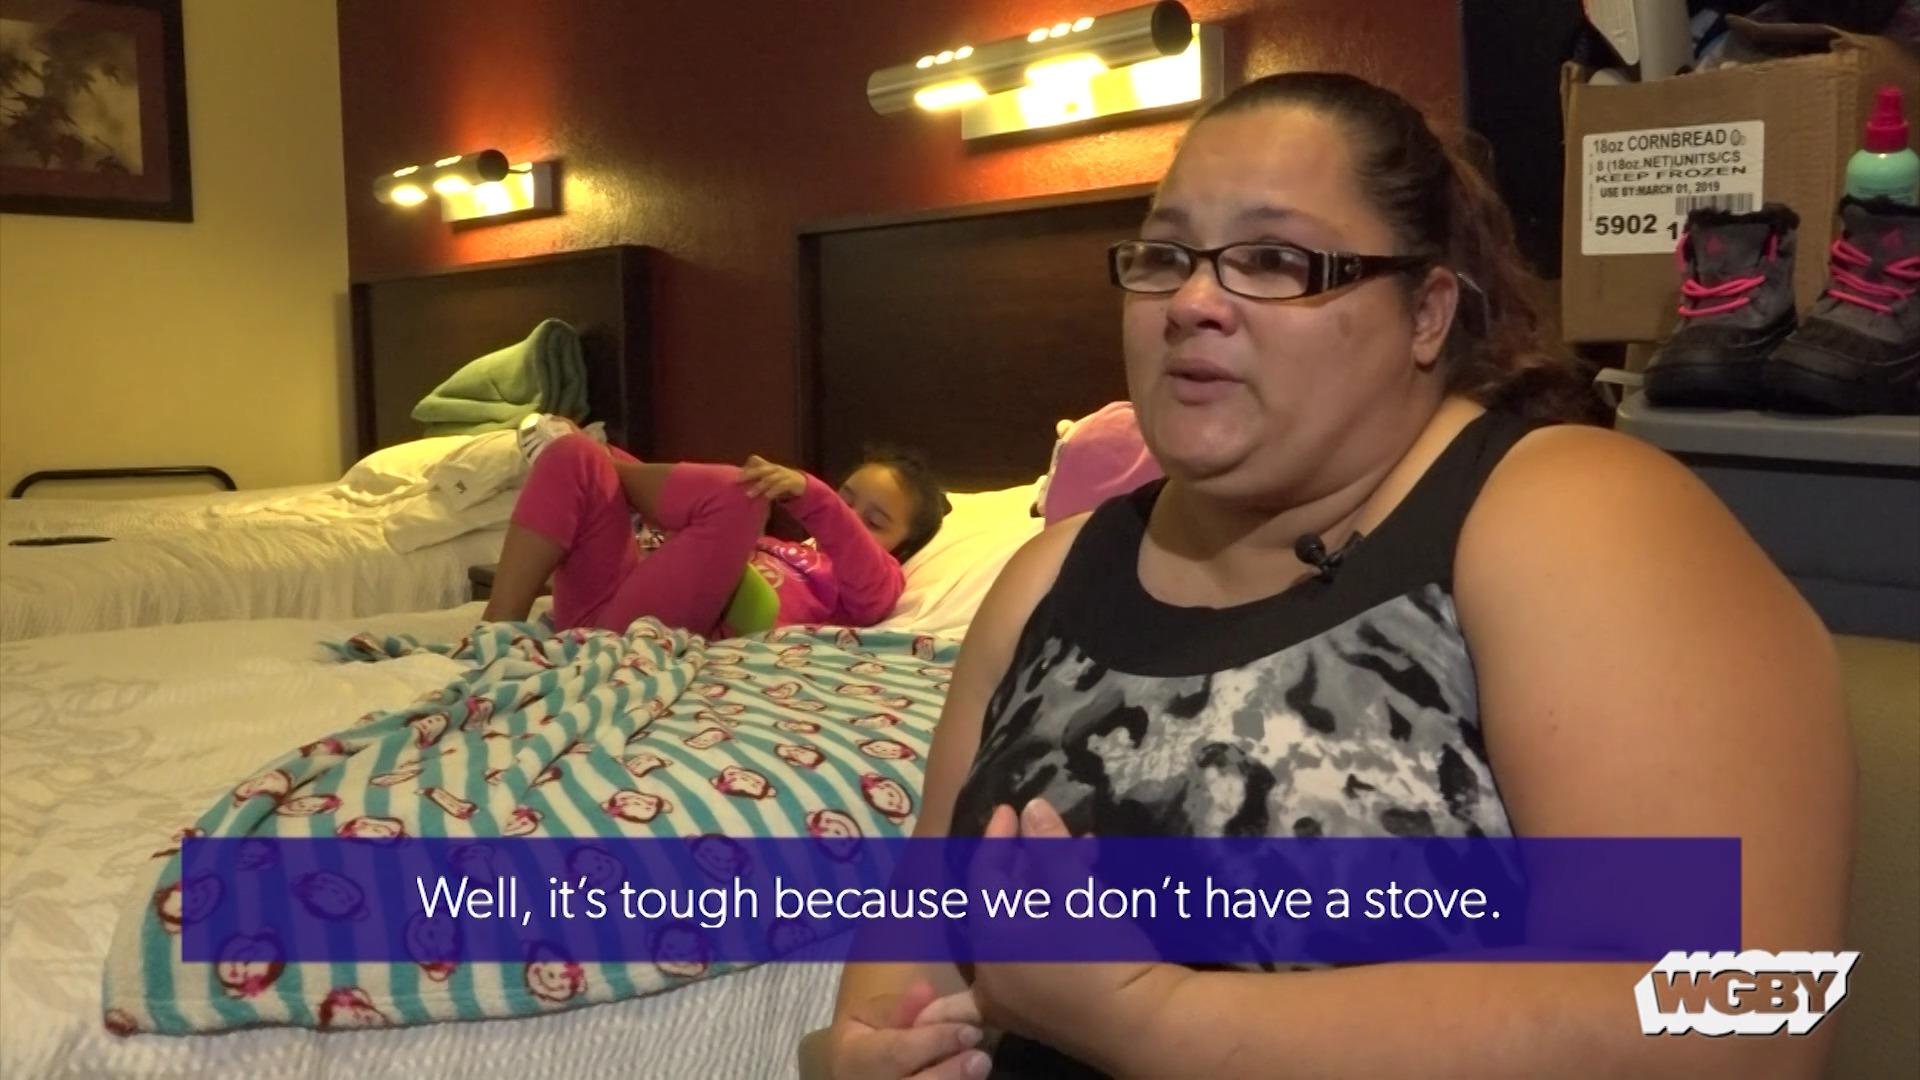 Meet a Springfield, MA family displaced by Hurricane Maria and see how they cope with living in an unfamiliar place where they do not know anyone.